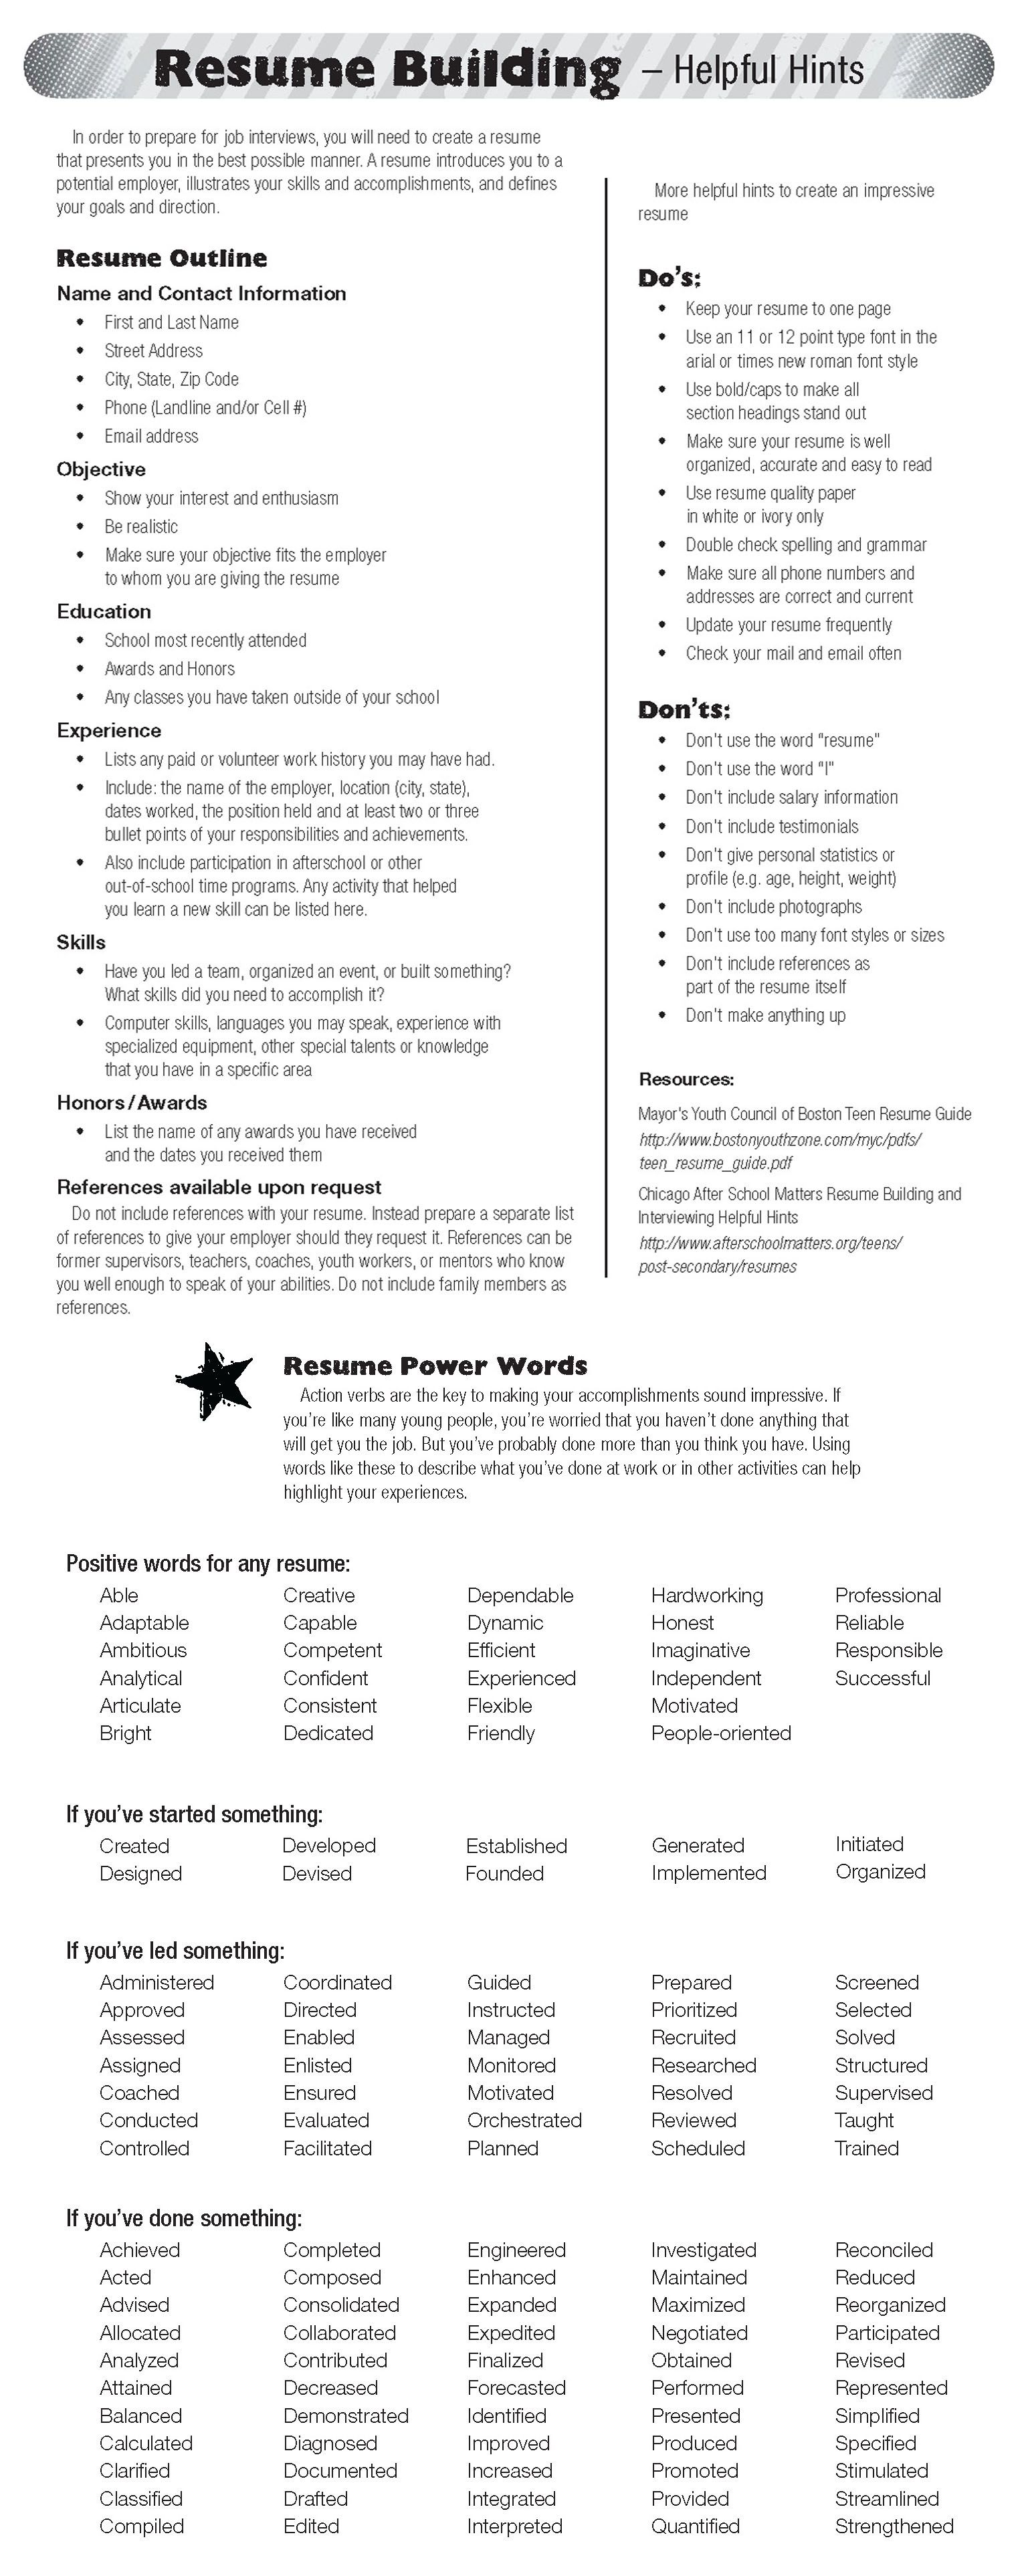 check out today s resume building tips resume resumepowerwords